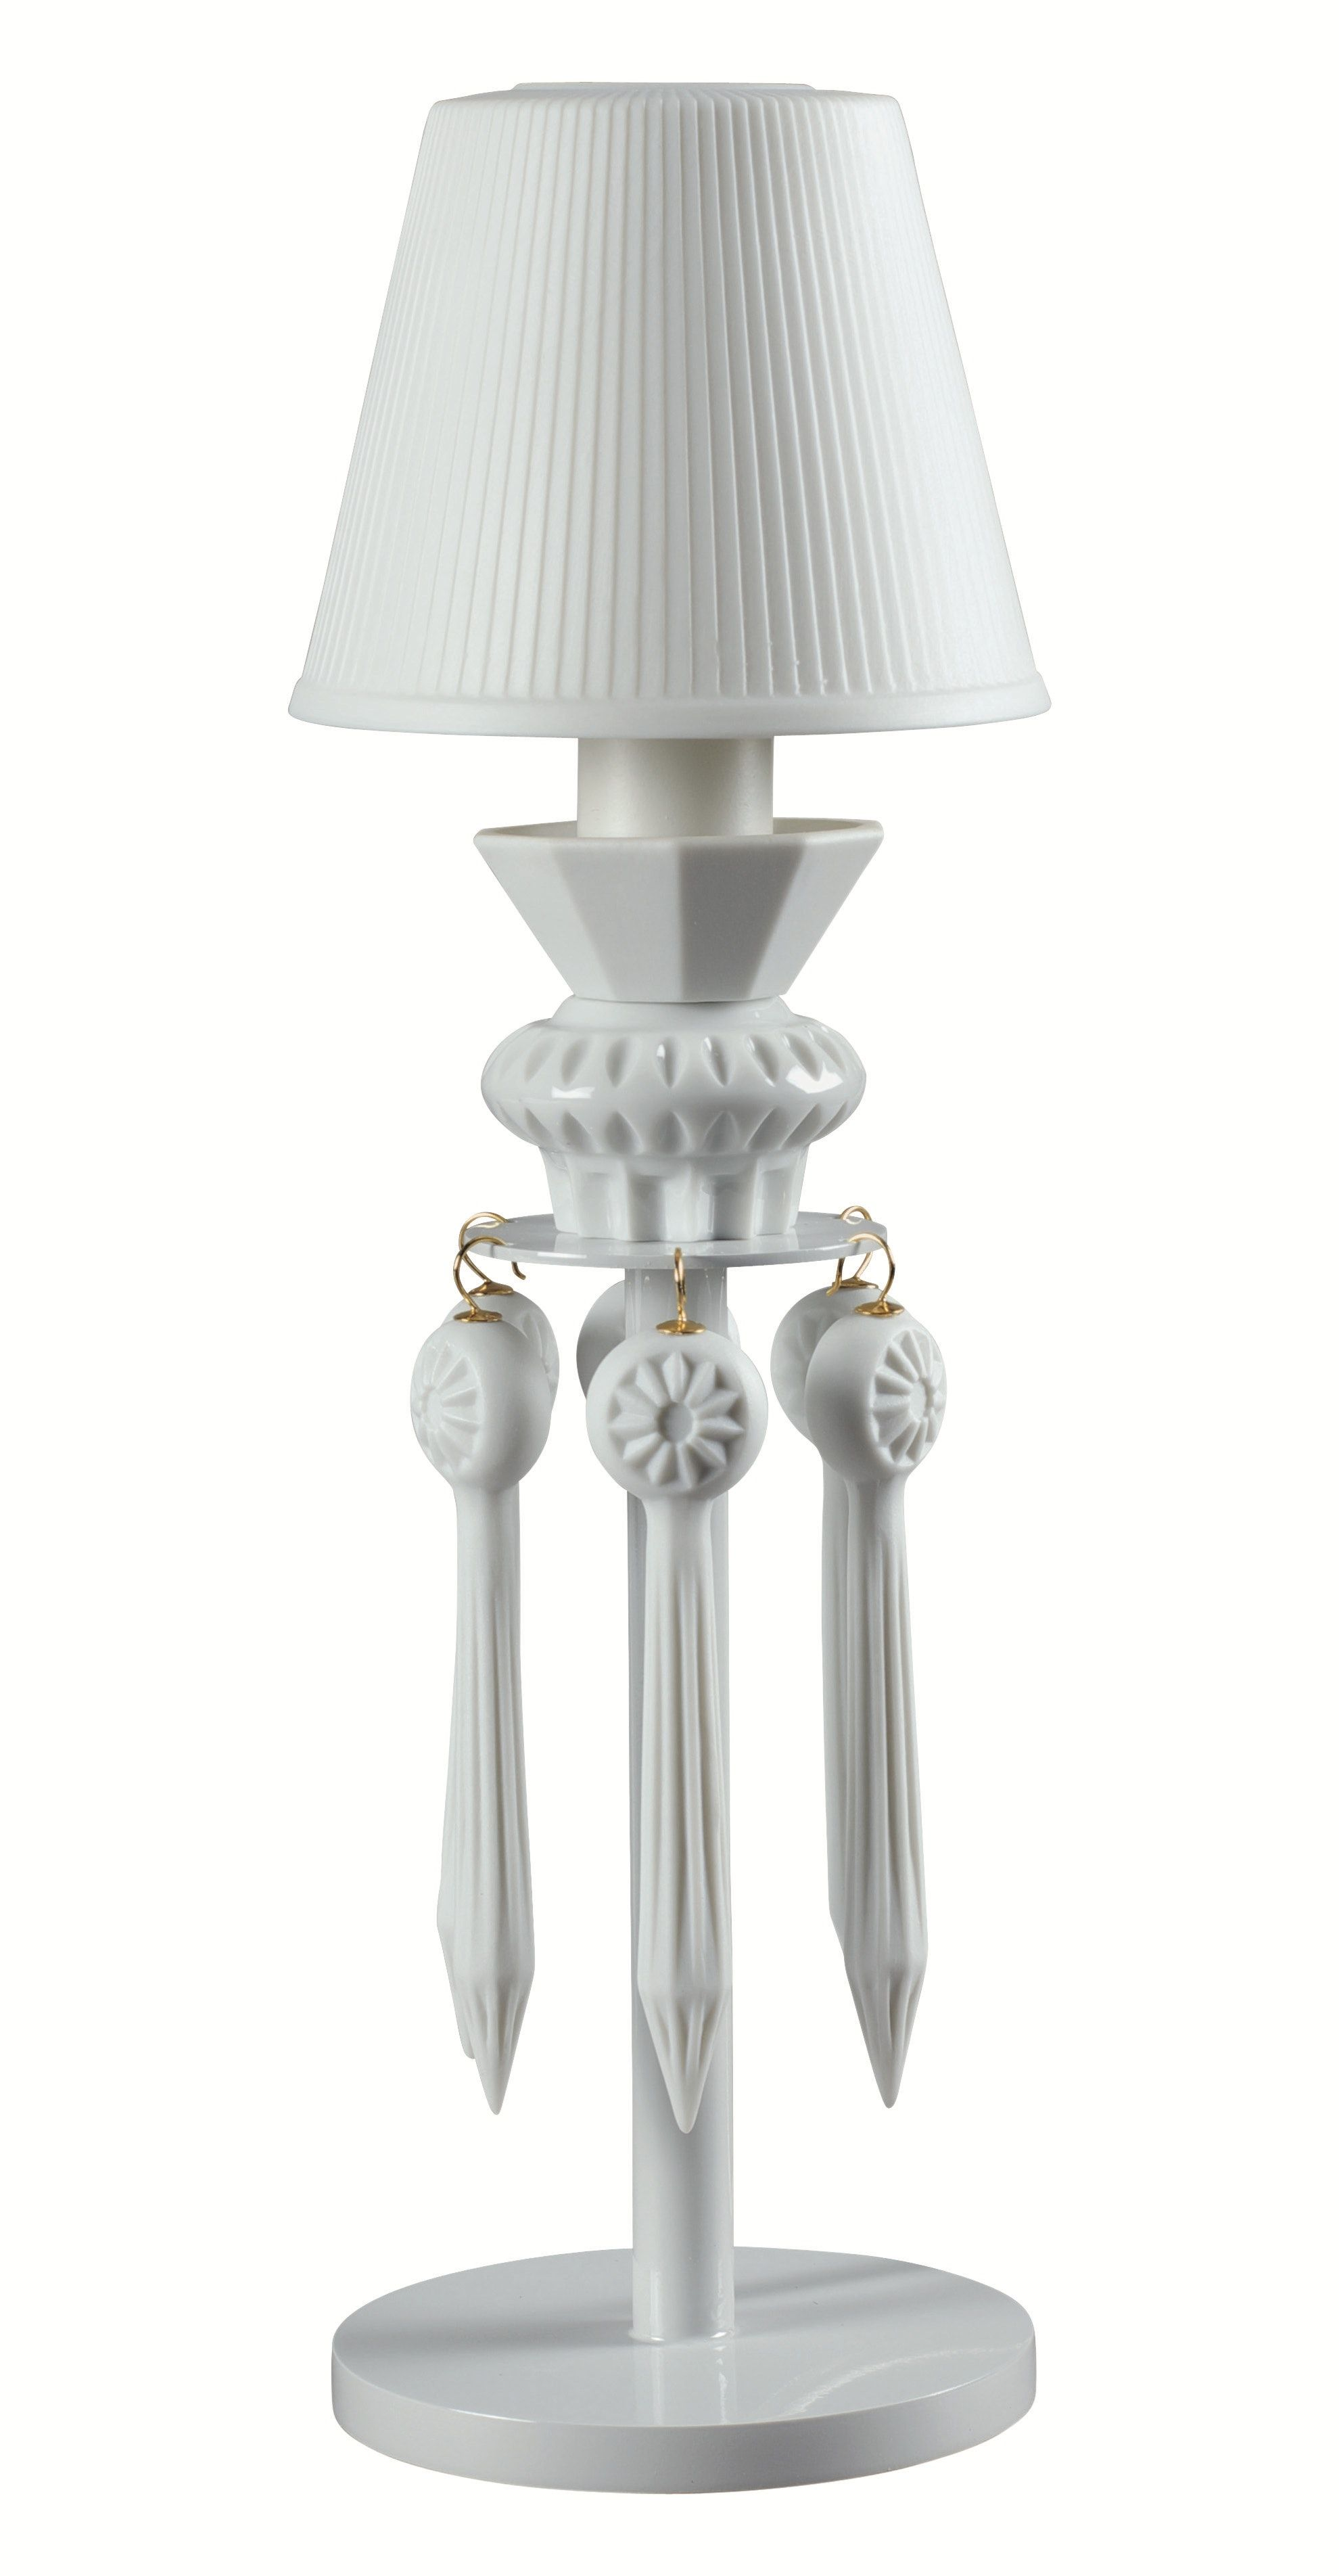 Unusual pendant lamps inspired by medusas digsdigs - Buy Belle De Nuit Small Lithophane Table Lamp By Lladr Made To Order